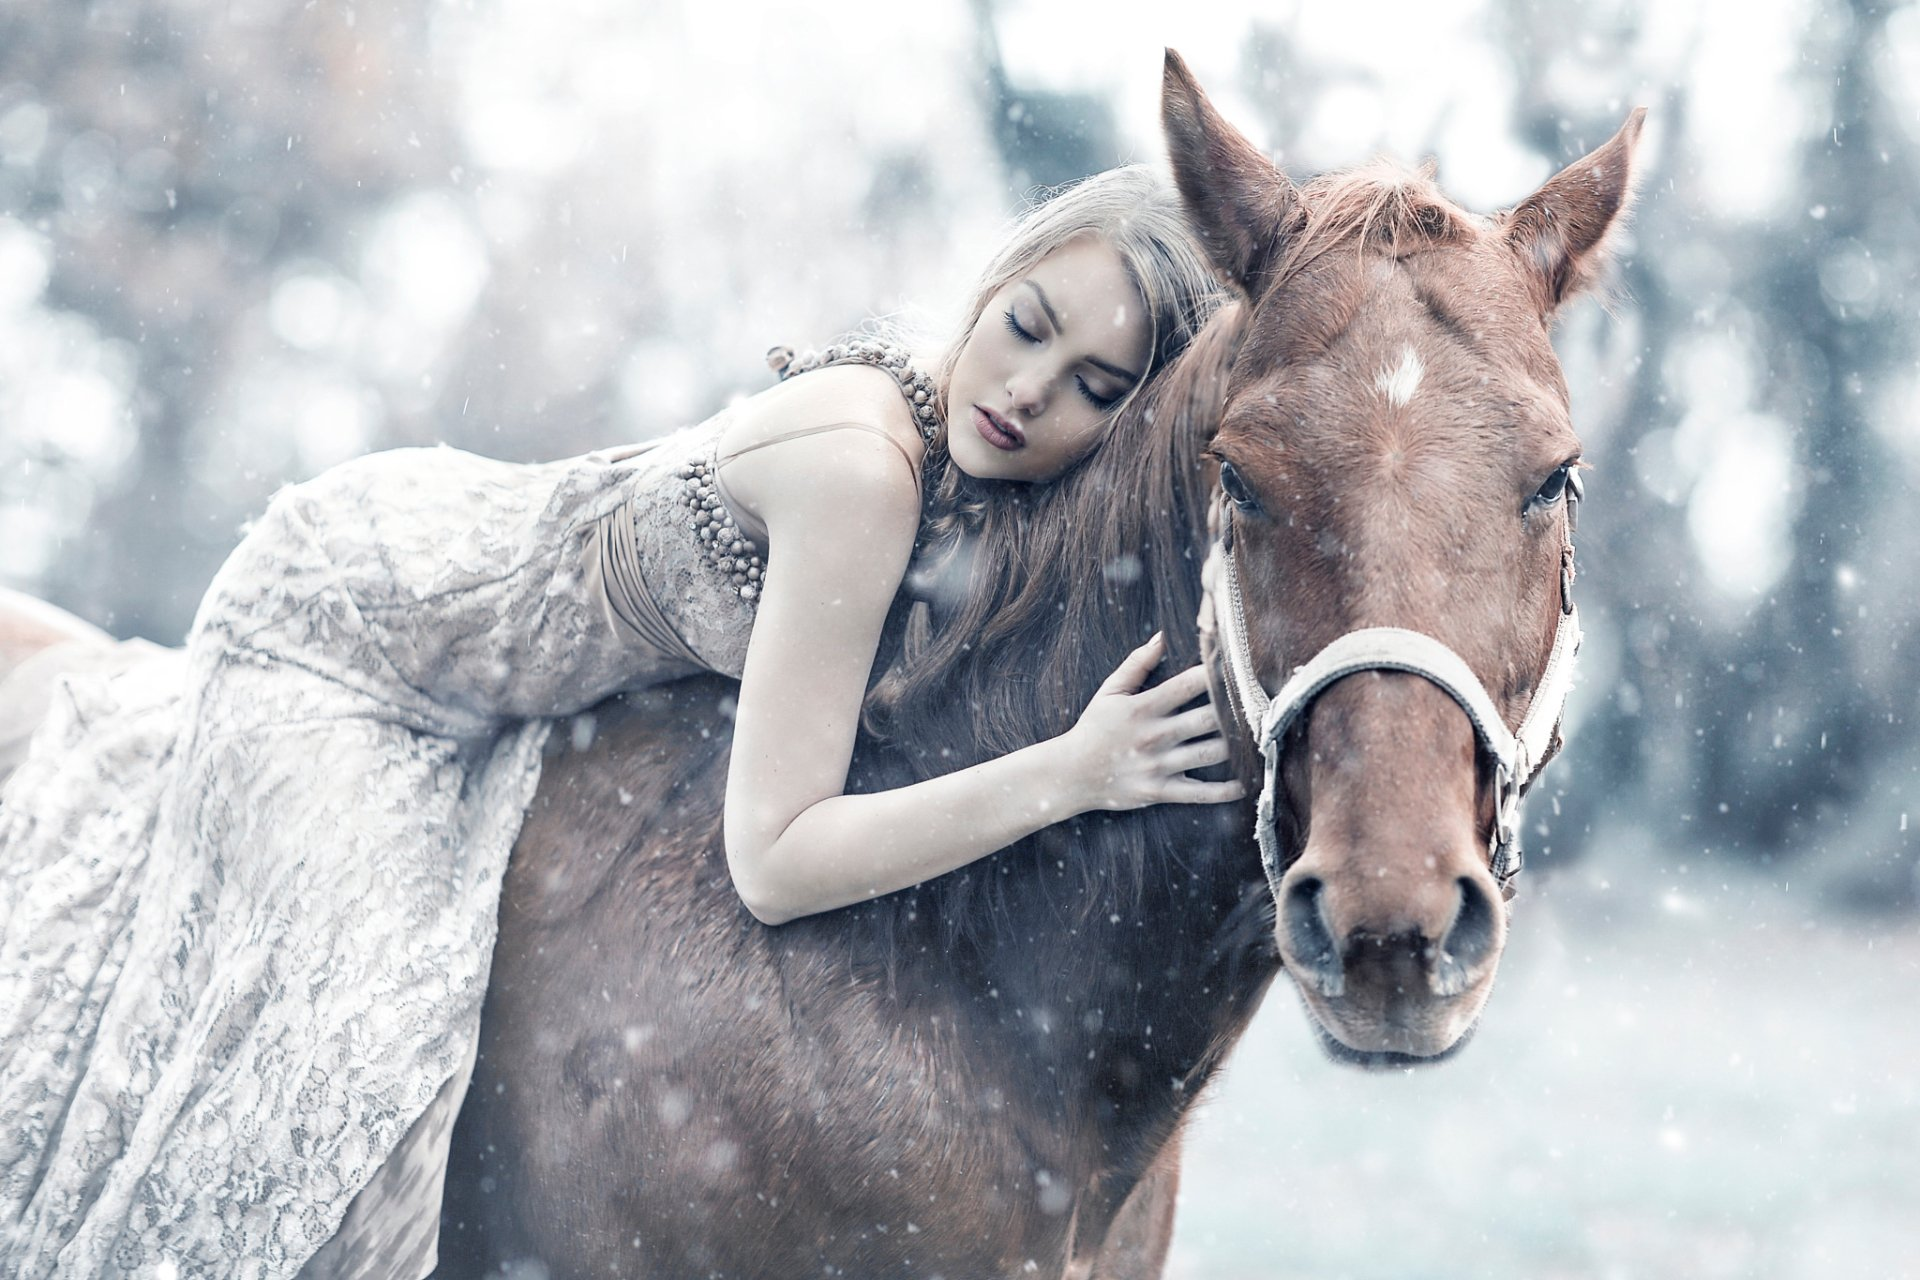 Women - Mood  Woman Model Girl Blonde Horse White Dress Bokeh Snowfall Wallpaper